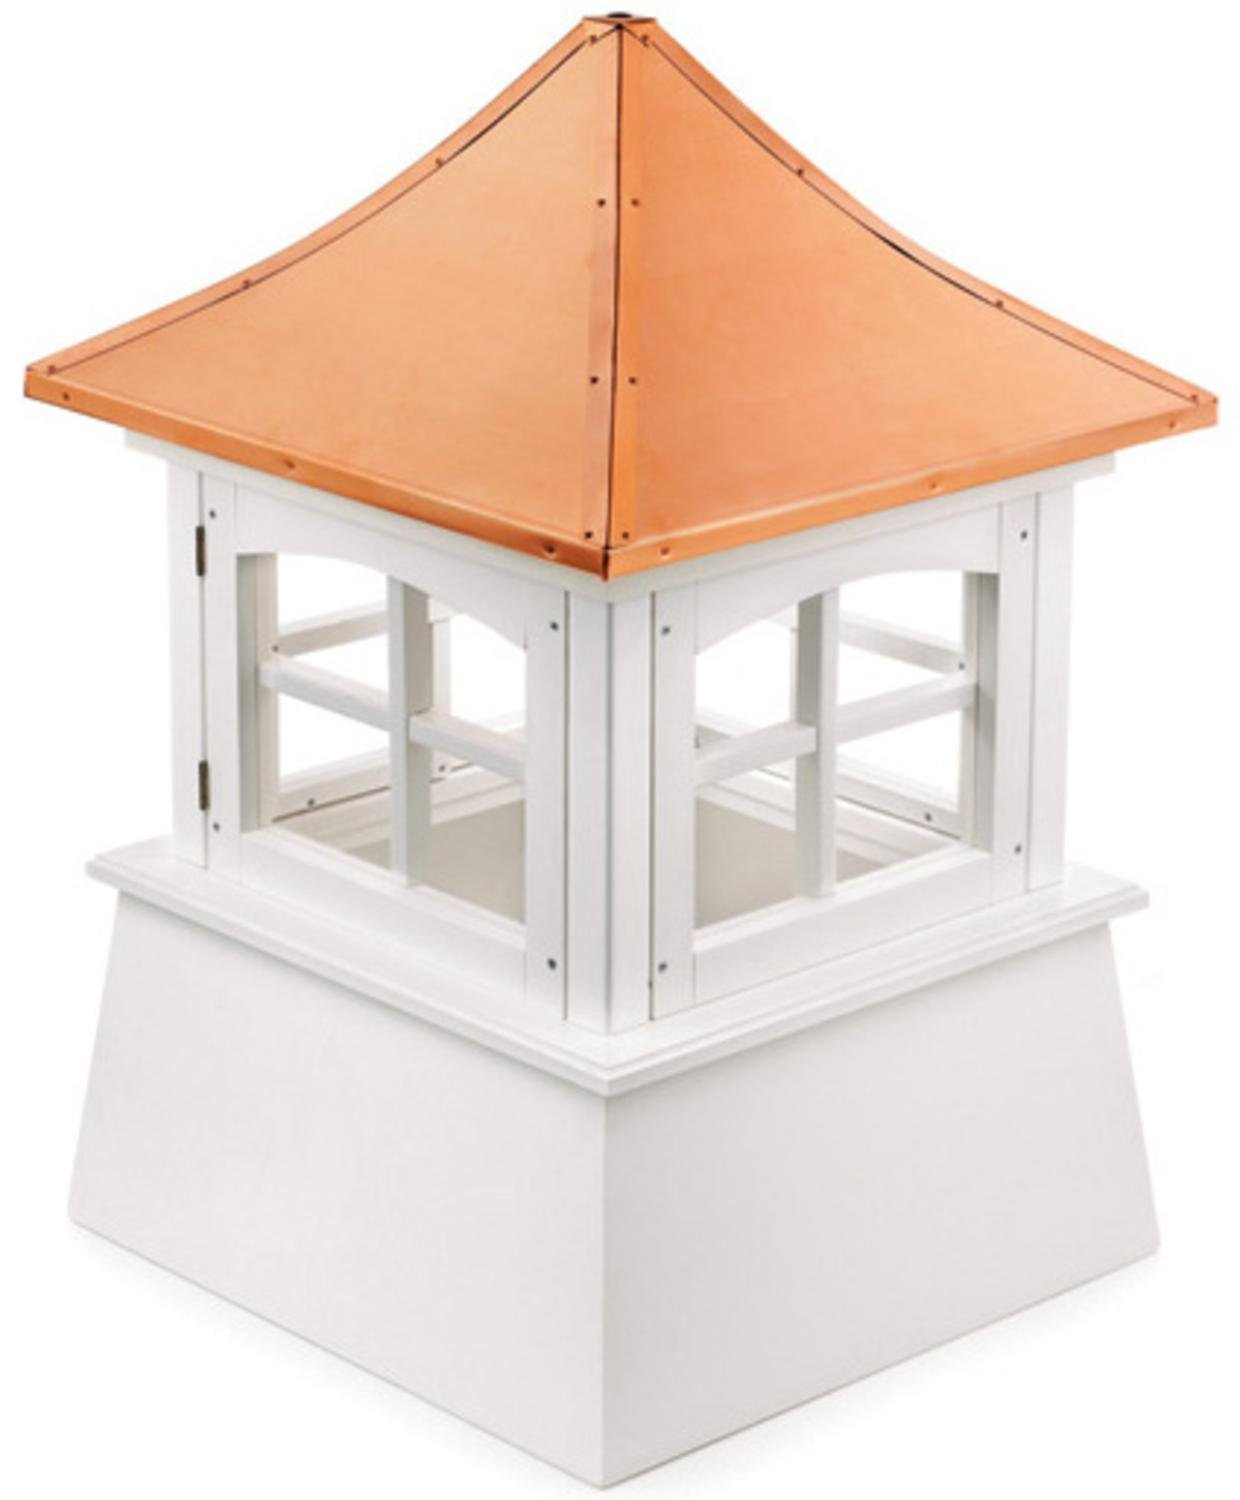 91'' Handcrafted ''Windsor'' Copper Roof Vinyl Cupola by CC Home Furnishings